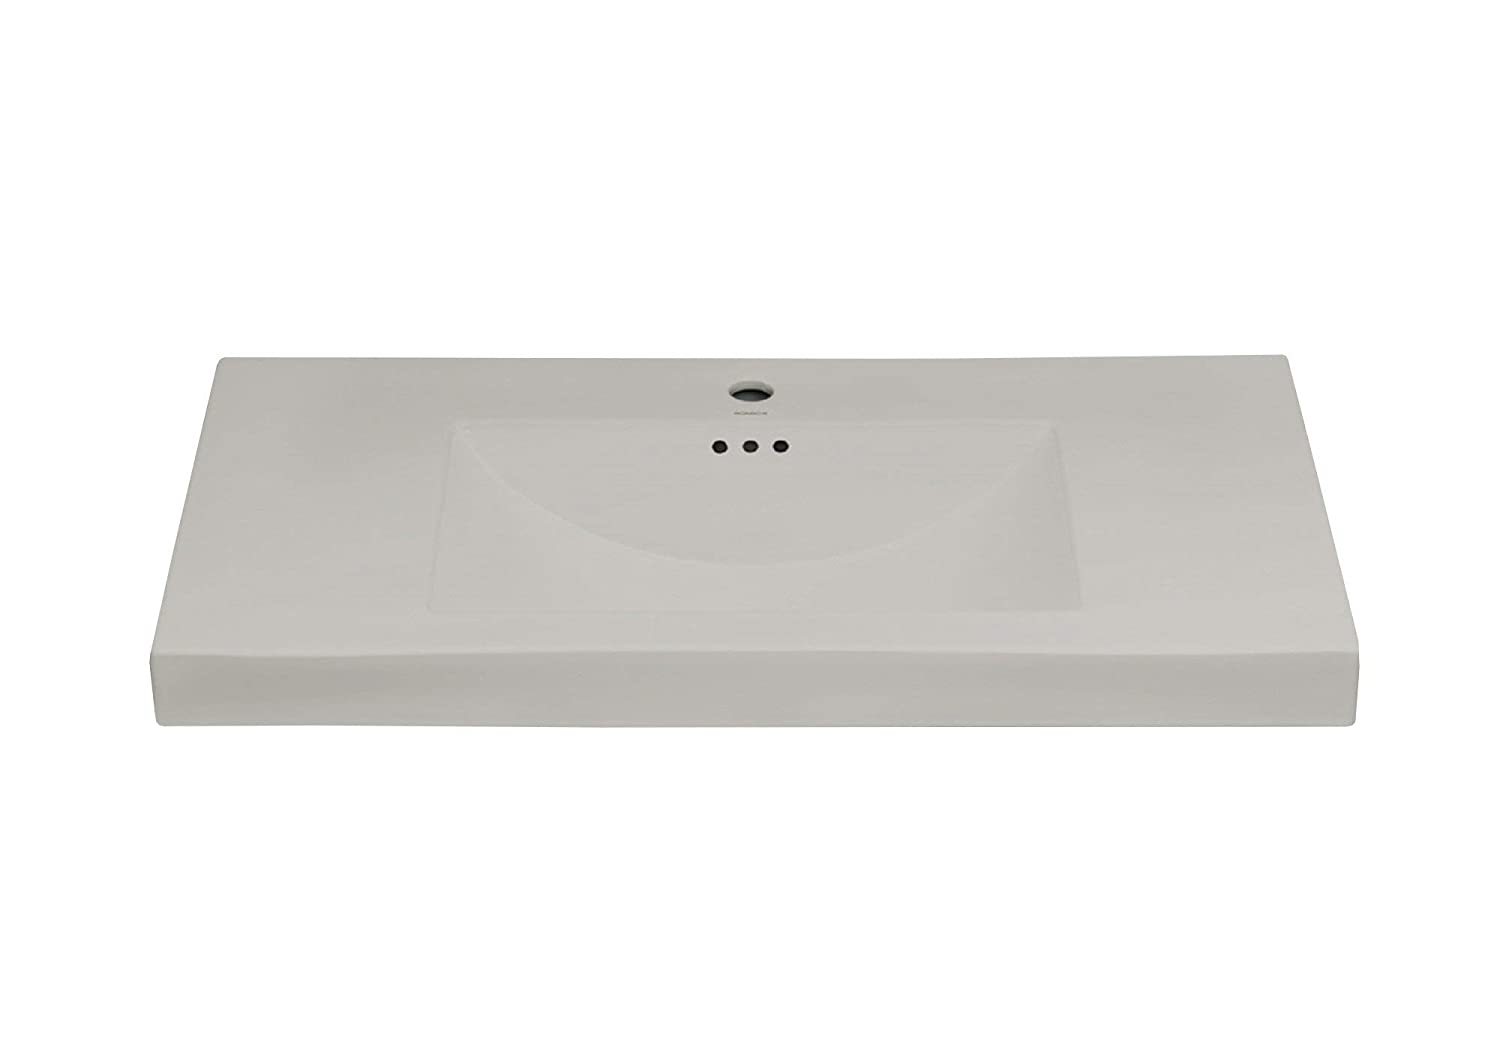 Ronbow 37 Evin Ceramic Bathroom Sink Sinktop with Single Vanity Faucet Hole for drain in Cool Gray color 216637-1-CG